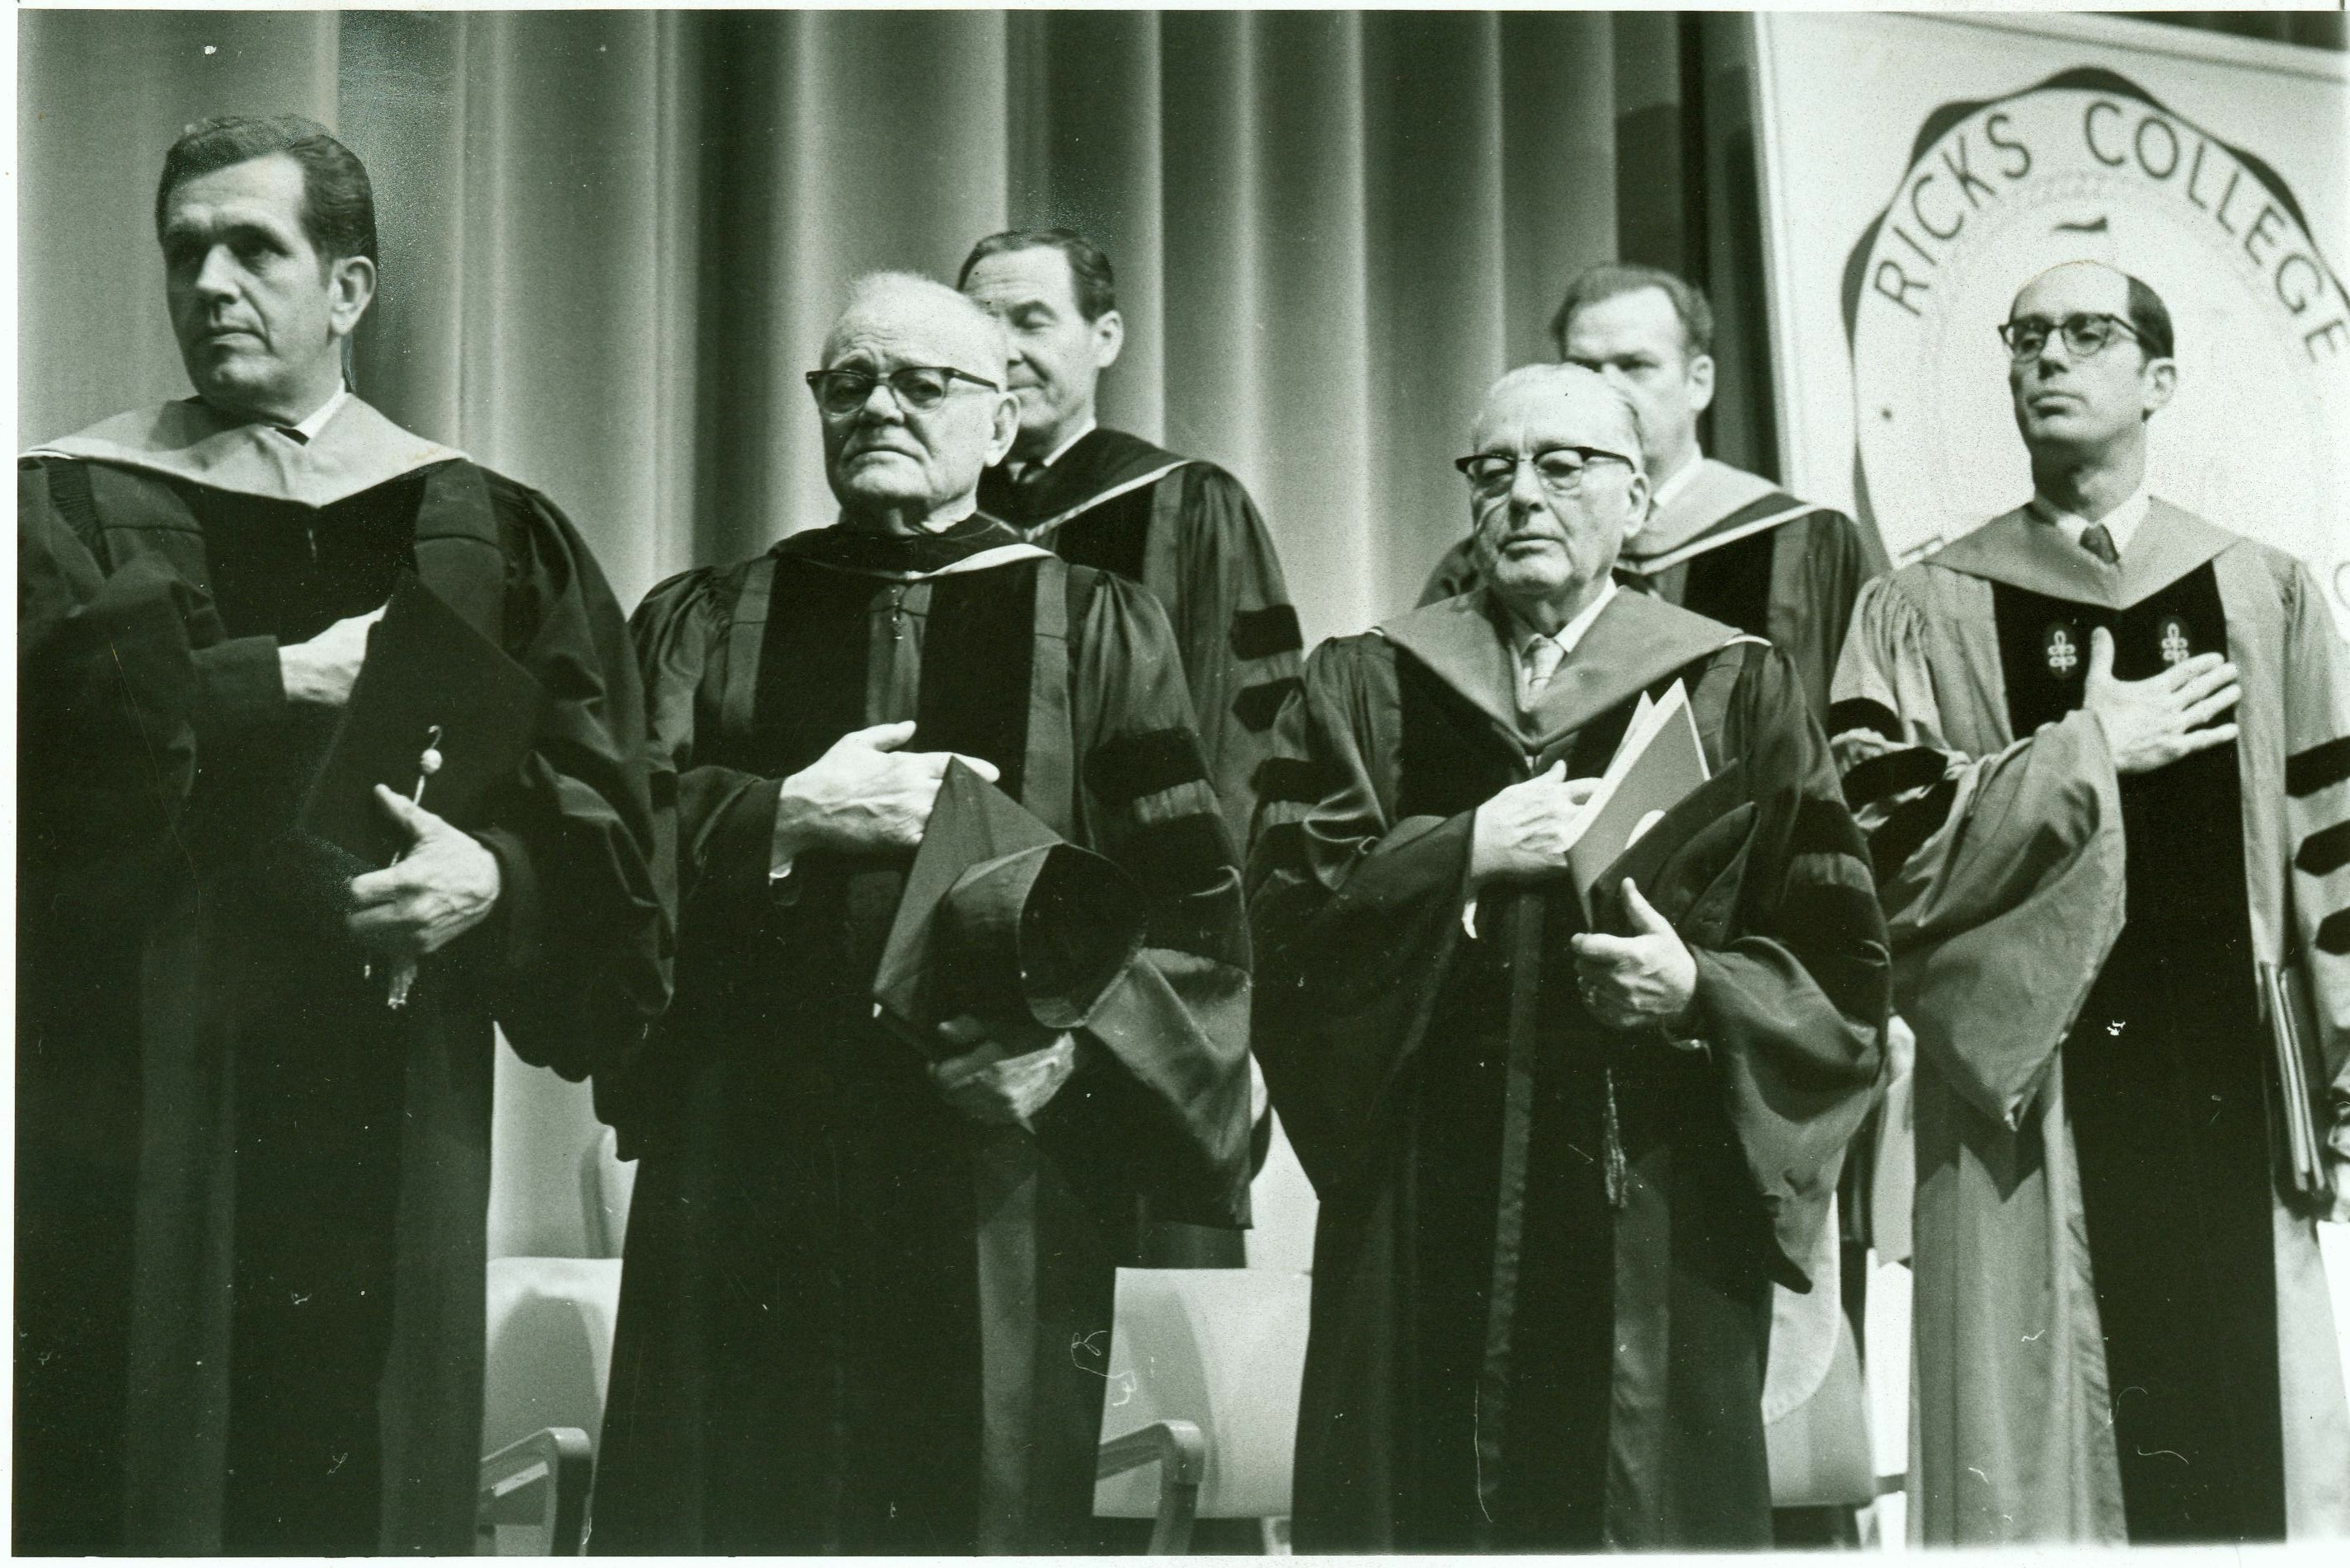 Elder Boyd K. Packer (from left), Elder Marion G. Romney, Bishop Robert L. Simpson, President Harold B. Lee, Elder Paul H. Dunn and Dr. Henry B. Eyring observe the flag ceremony at Dr. Eyring's inaugural at Ricks College.